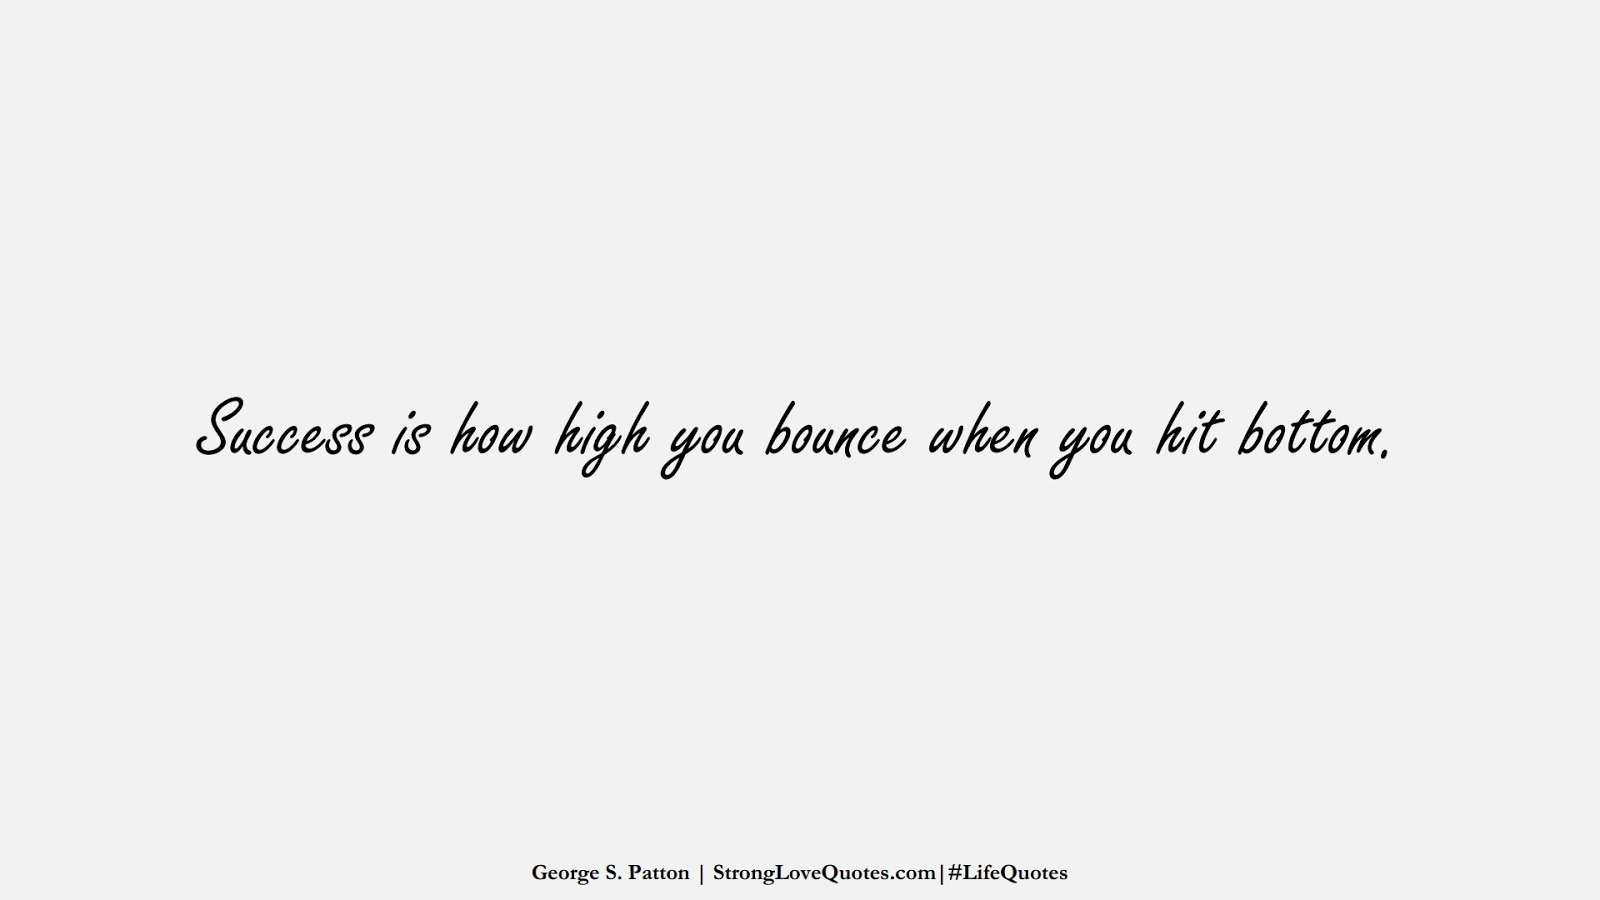 Success is how high you bounce when you hit bottom. (George S. Patton);  #LifeQuotes